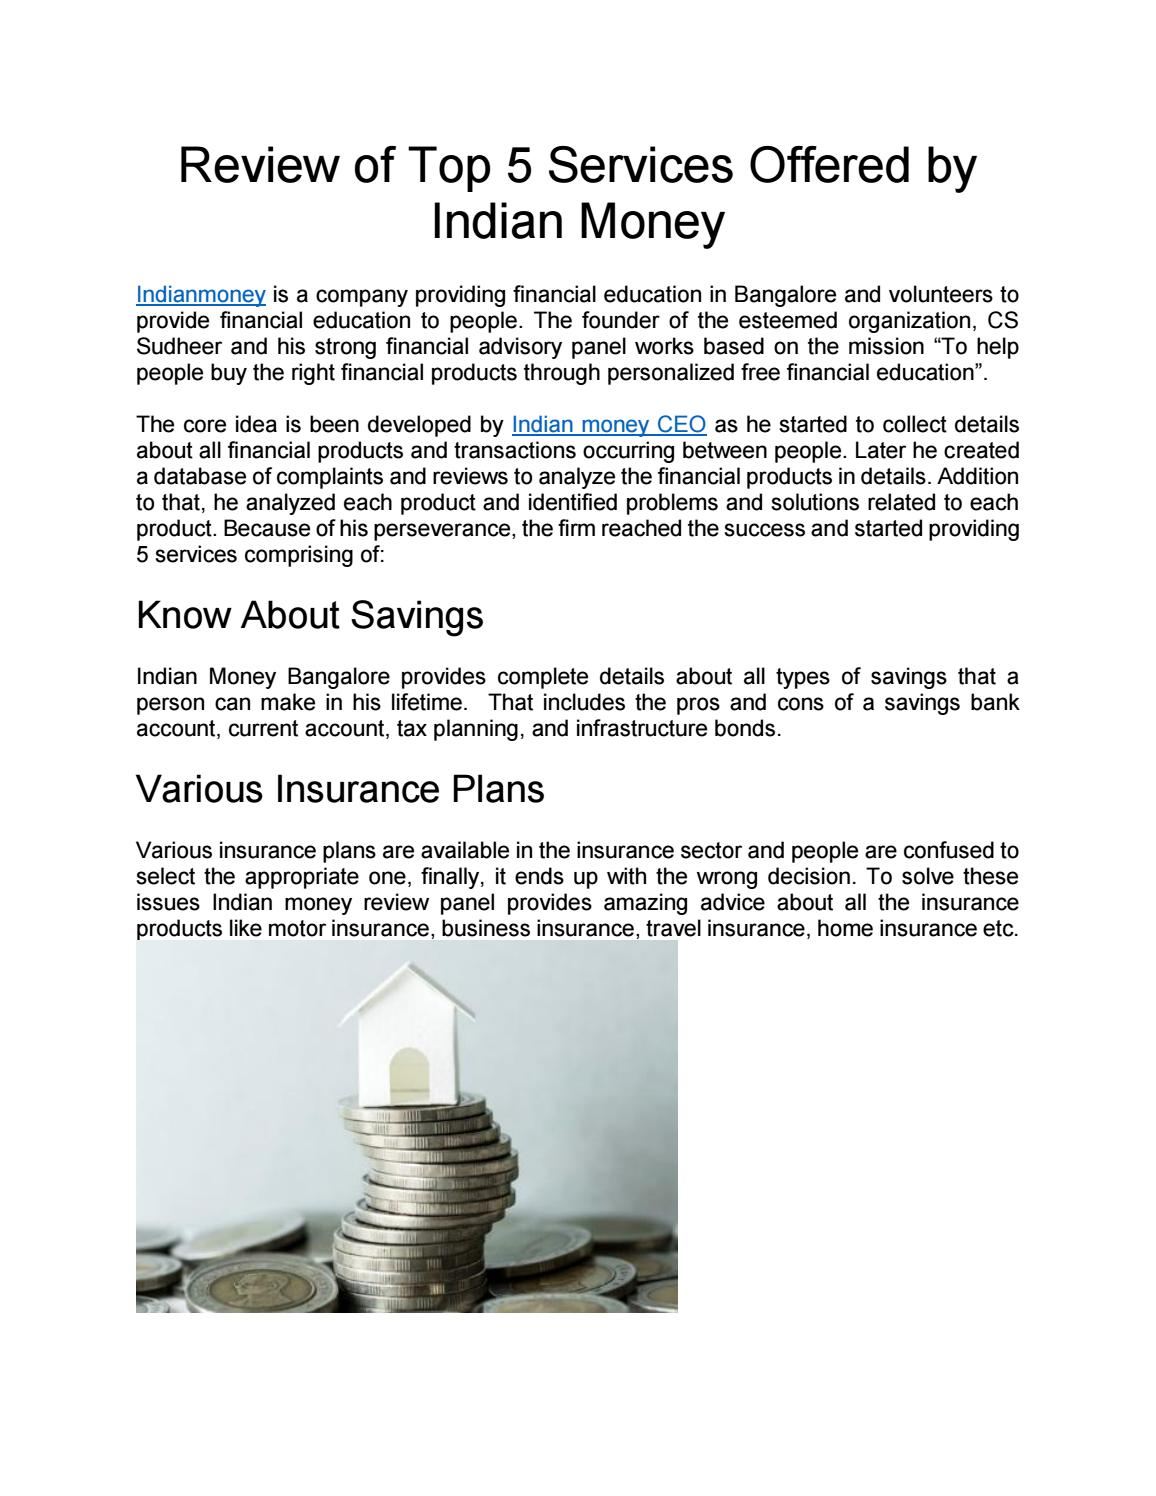 Indianmoney Services(top 5 services) | Indian Money Reviews